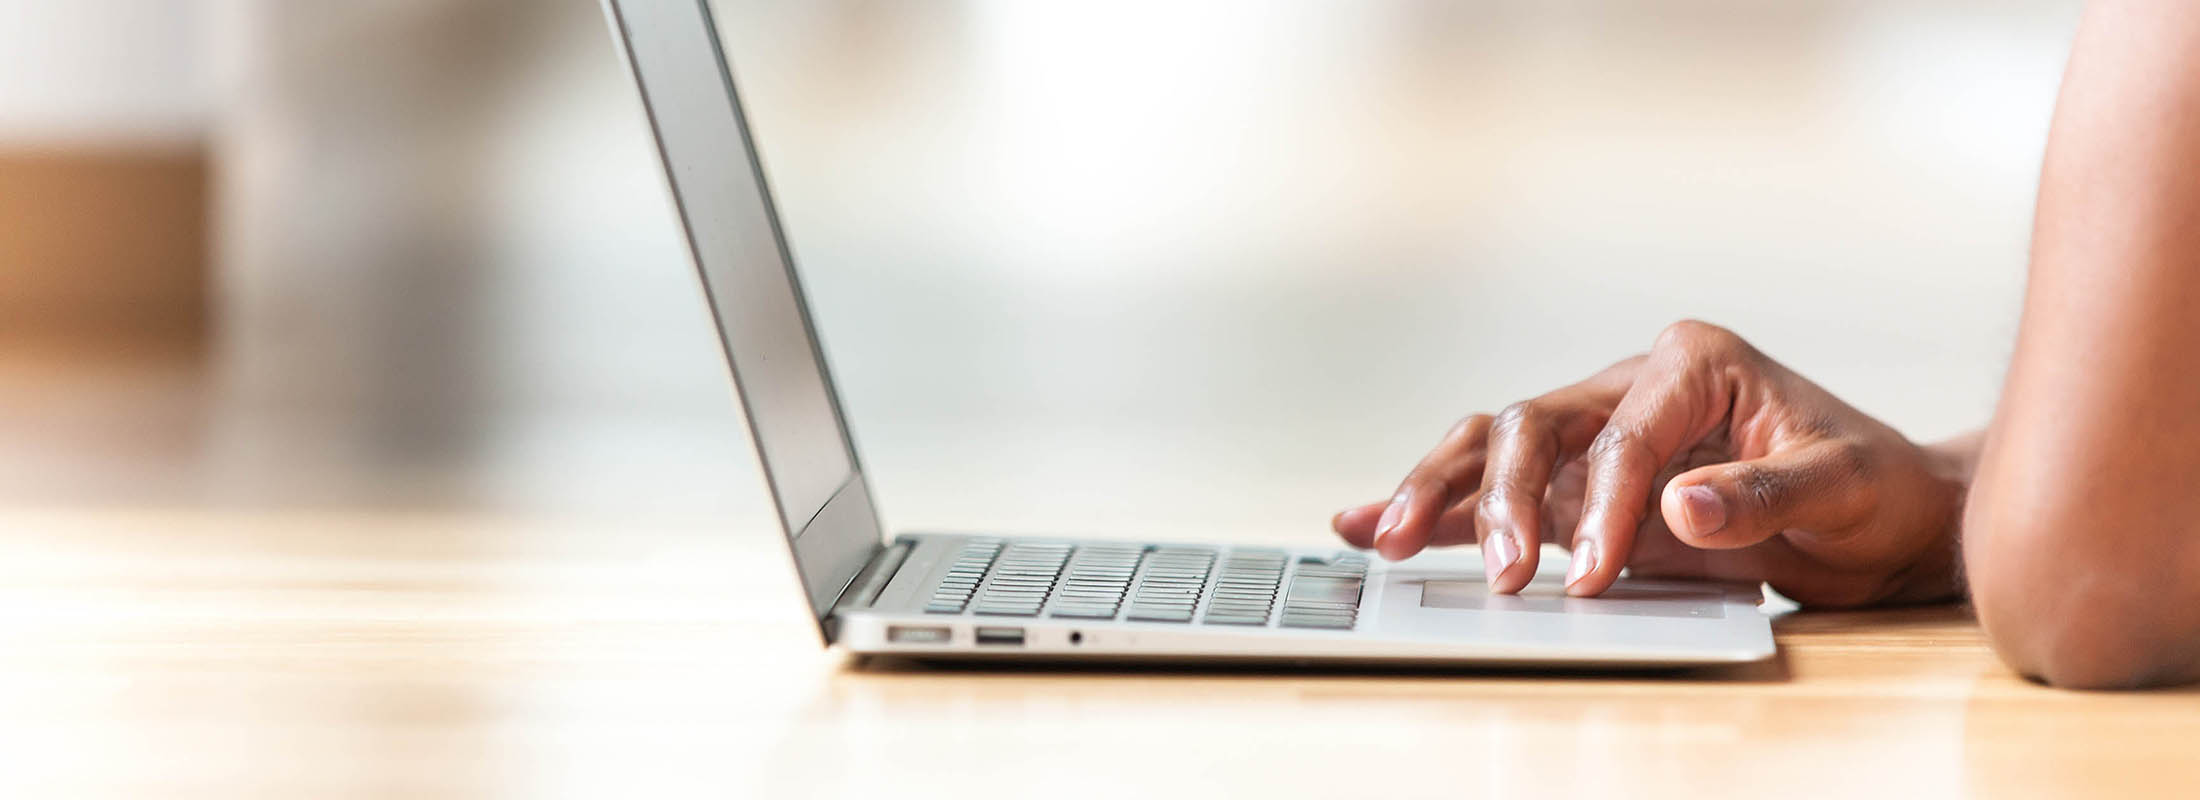 County Executive Mark  Poloncarz wants the county to borrow $20 million for an ErieNet initiative that would bring high-speed internet access to every town and city in Erie County, from Grand Island to Sardinia and from the West Side to the East Side of Buffalo.